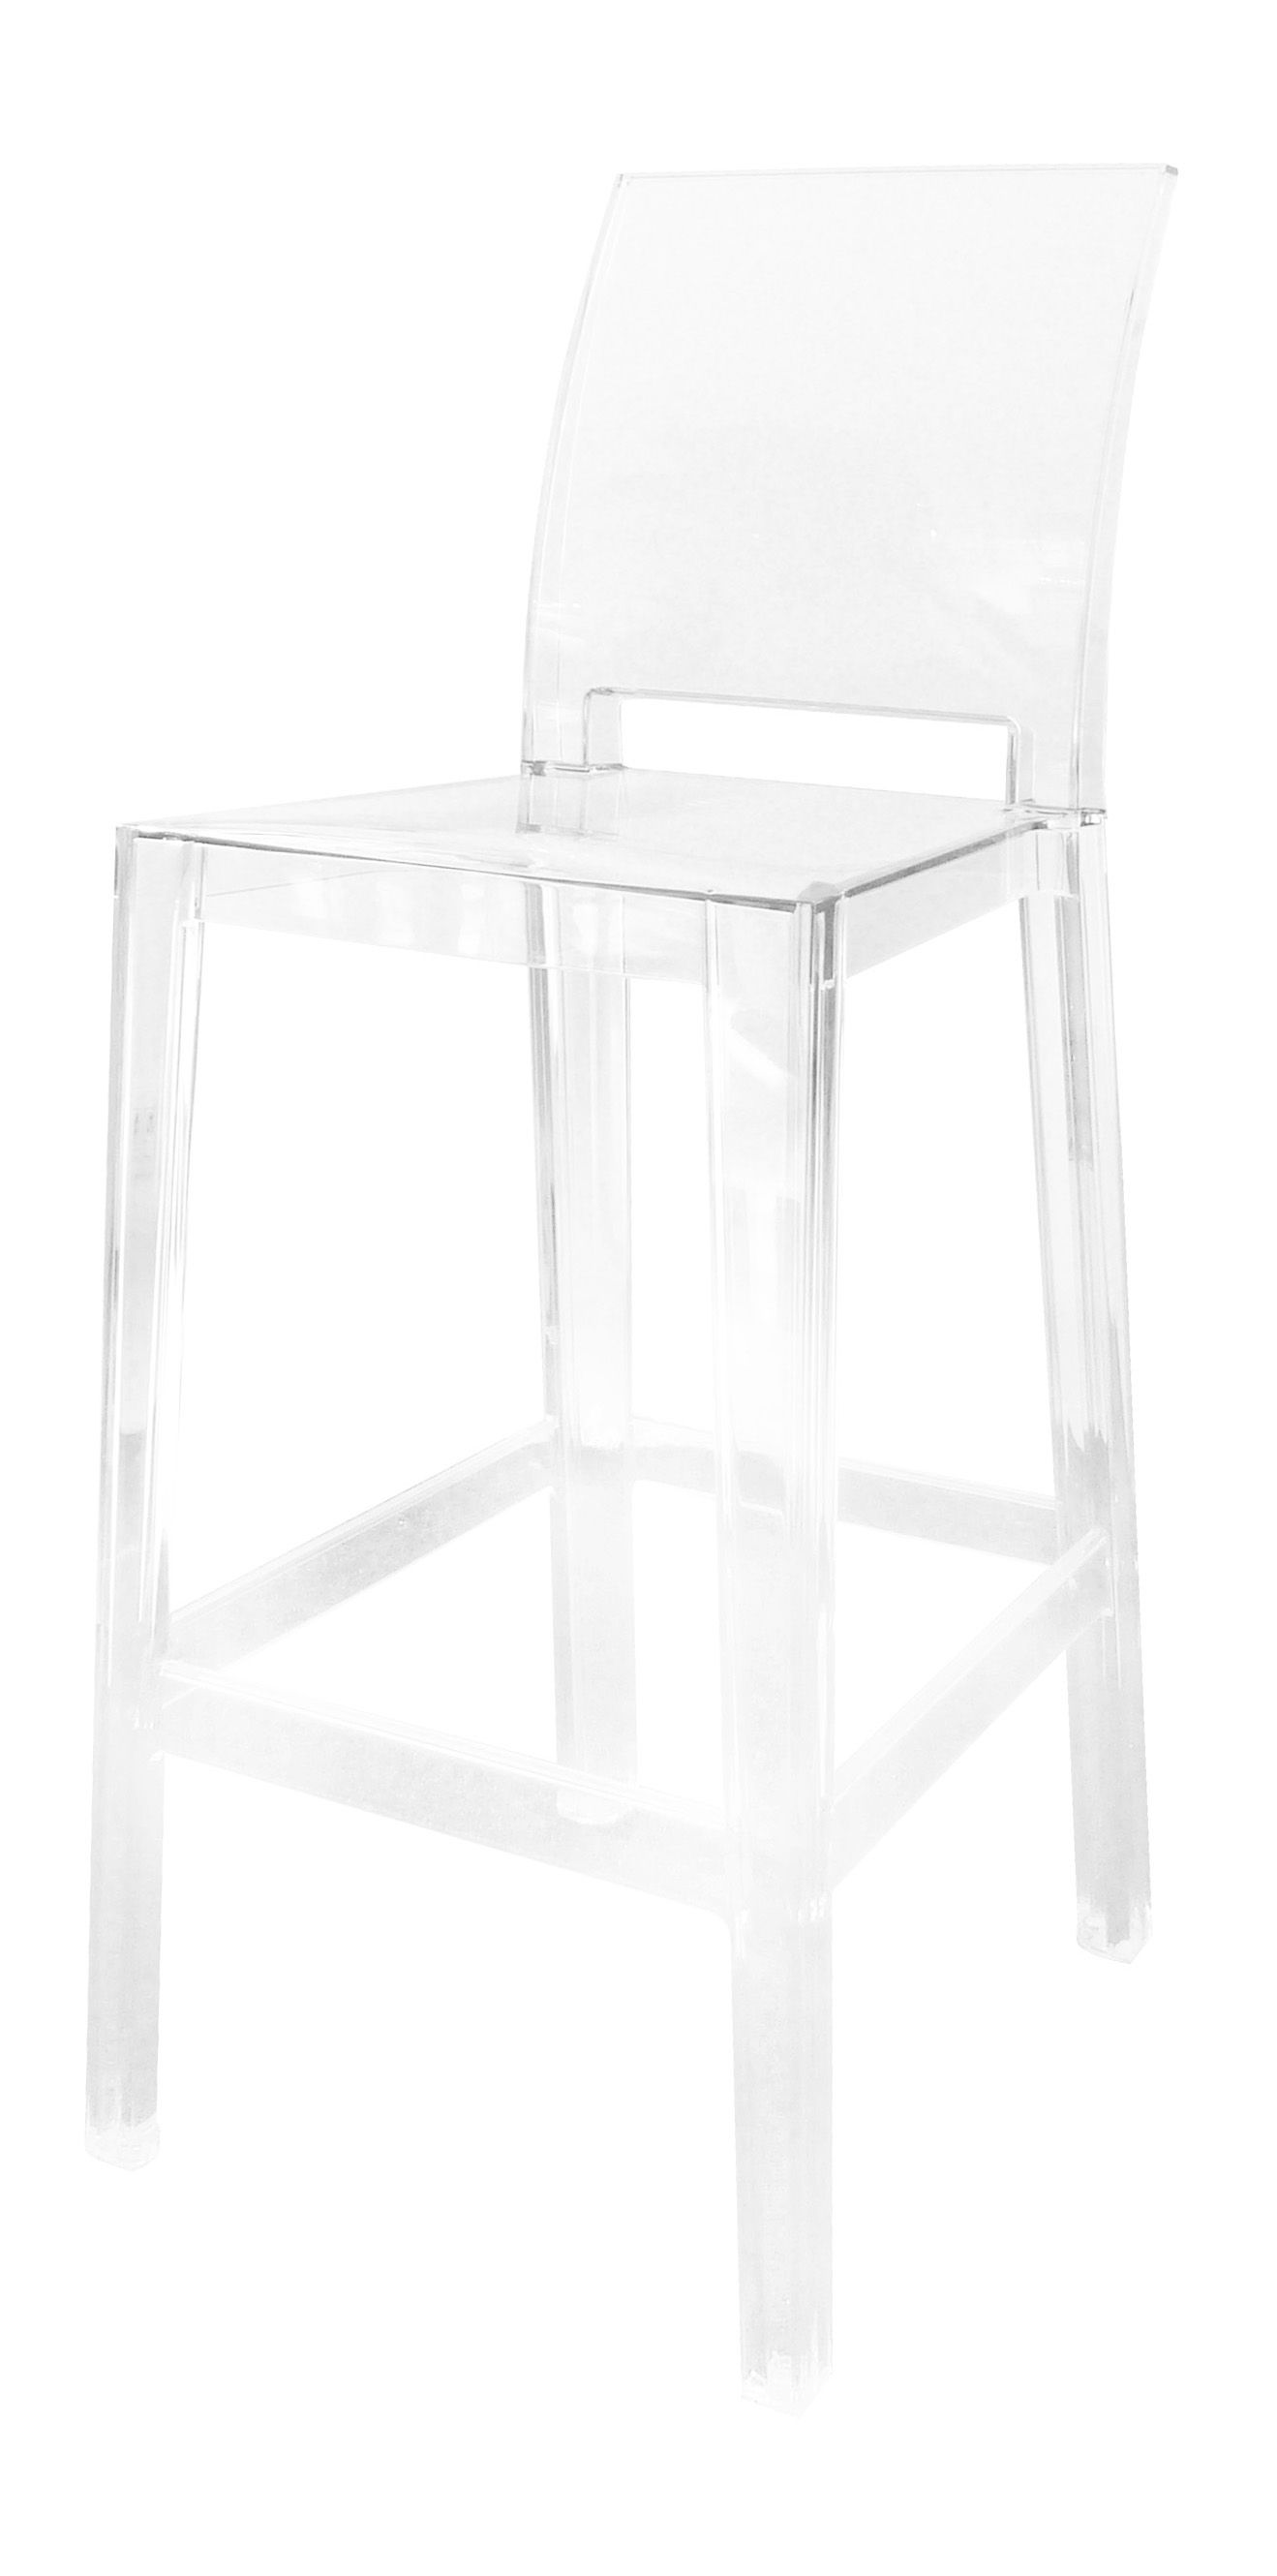 Mobilier - Tabourets de bar - Chaise de bar One more please / H 65cm - Plastique - Kartell - Cristal - Polycarbonate